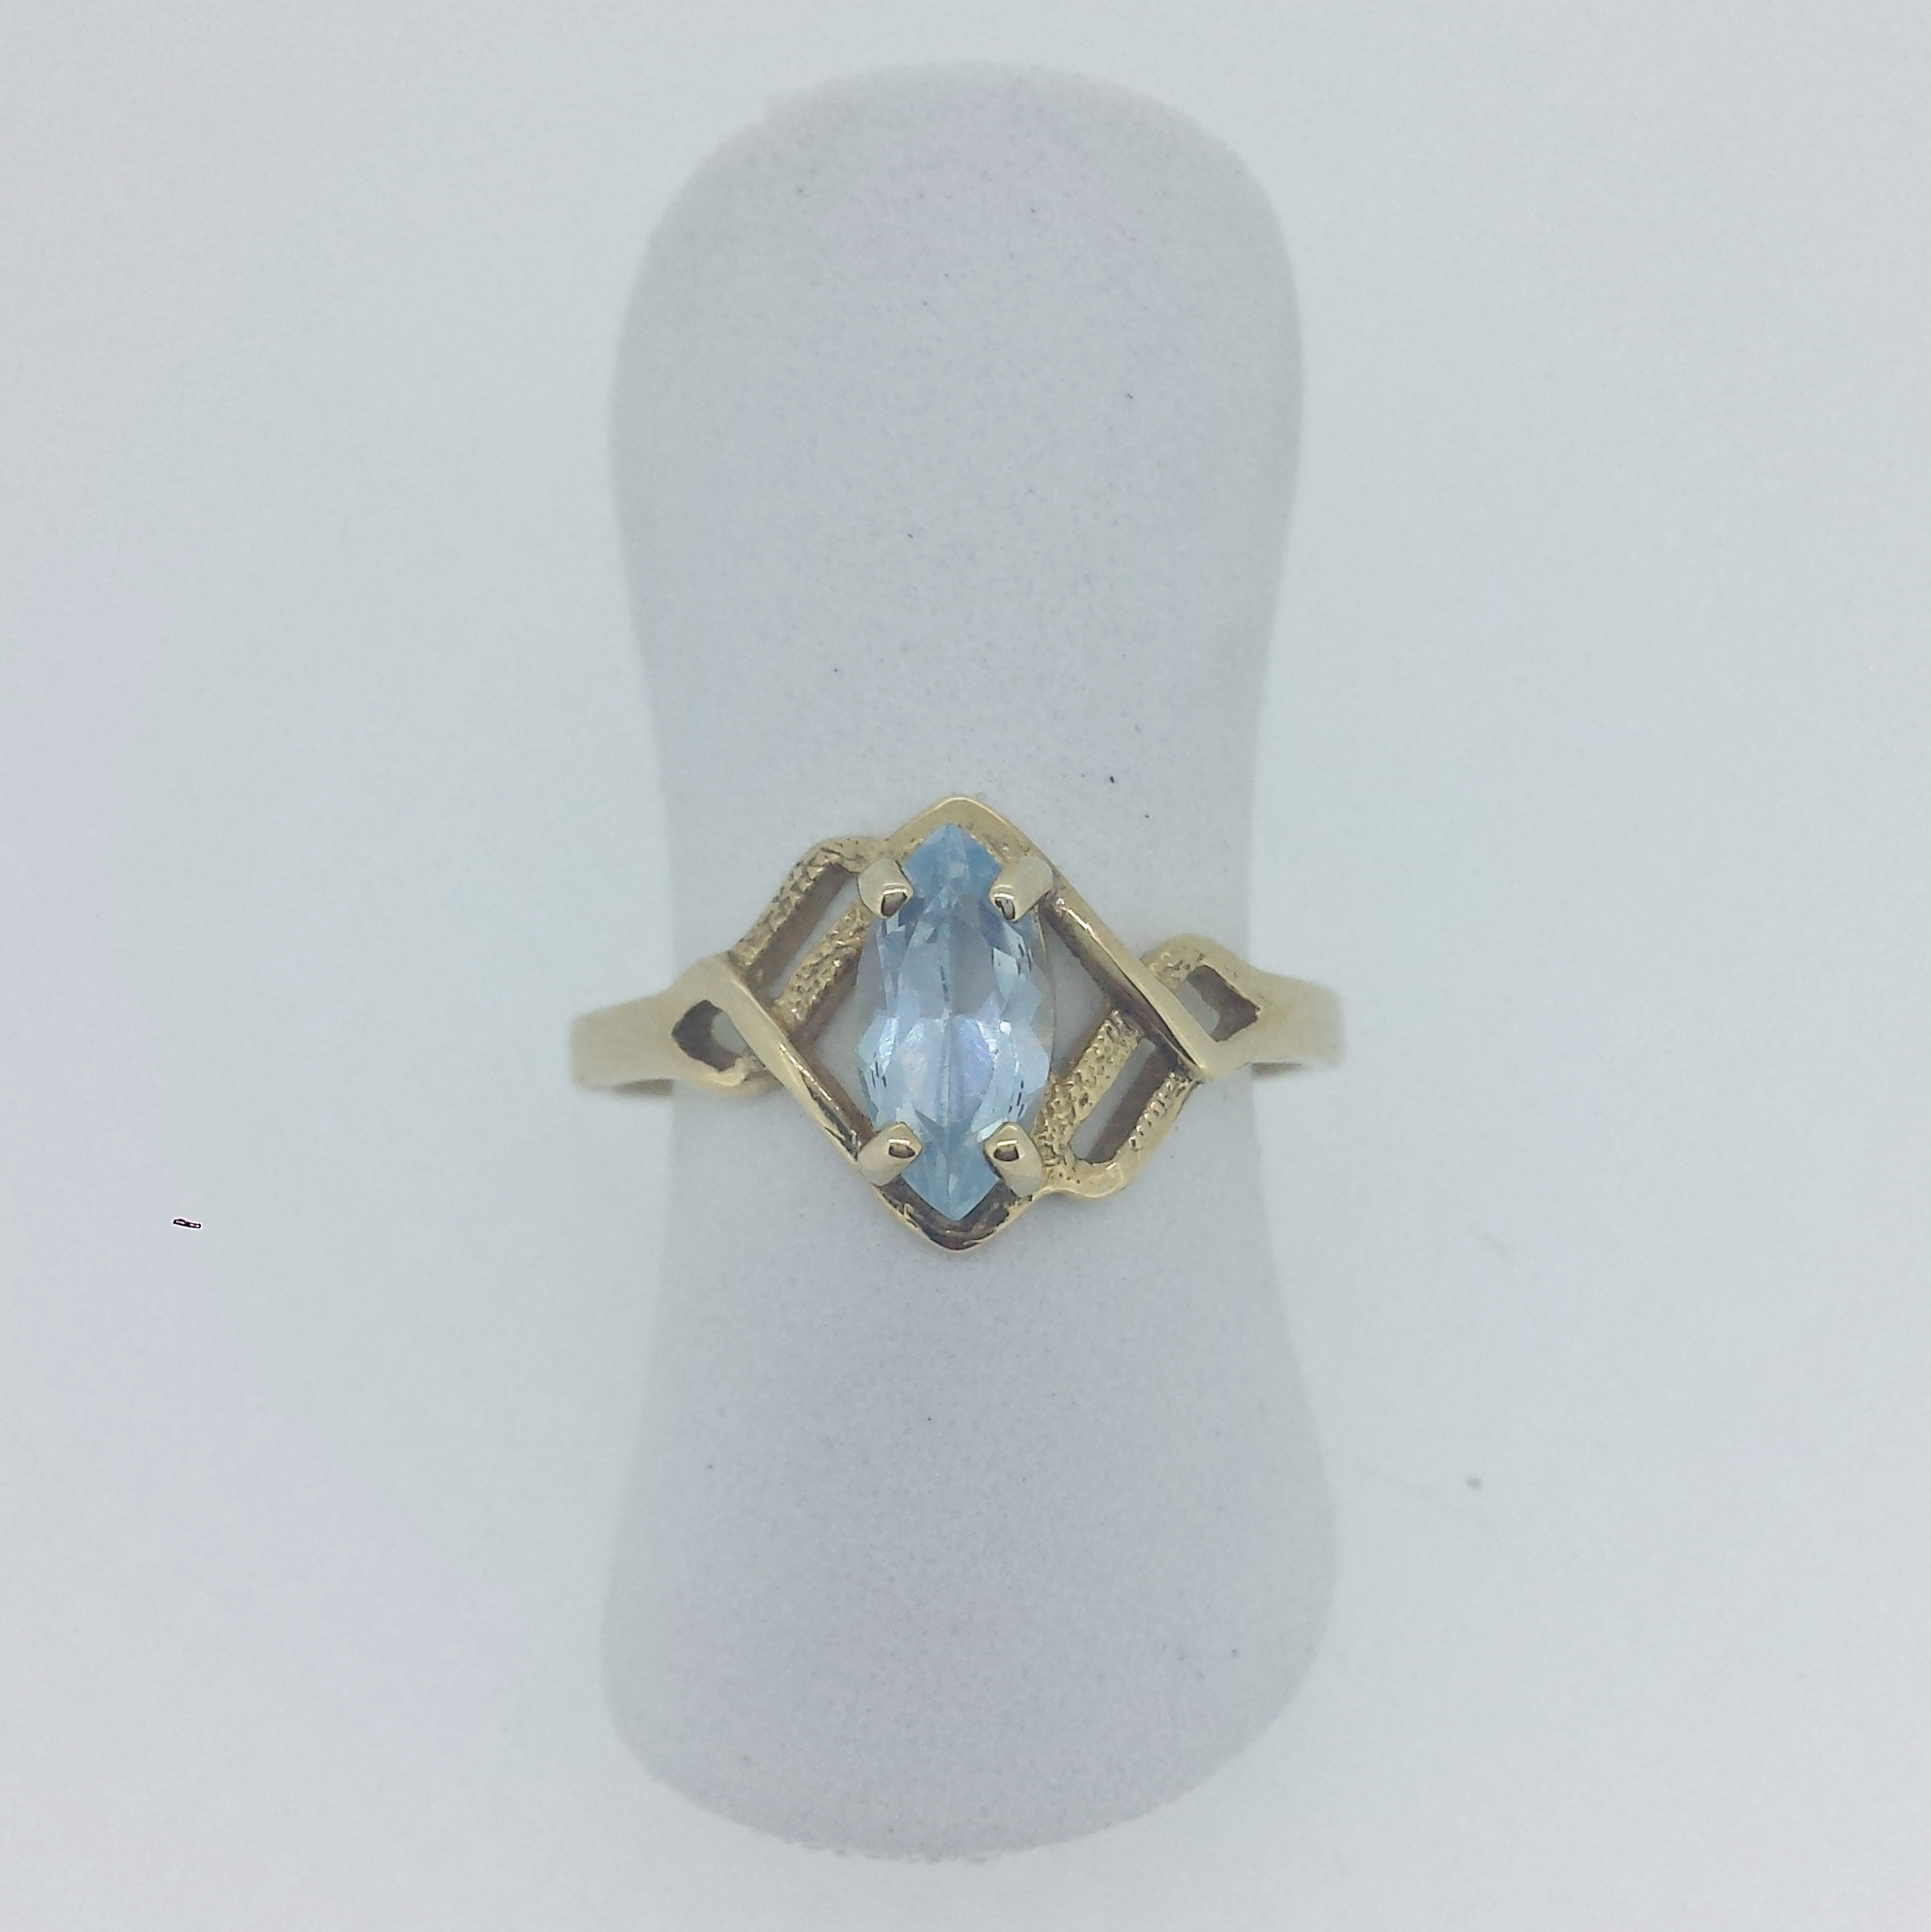 jewelry aquarian jewellery ringgg ring aquamarine products raw rough delicate thoughts